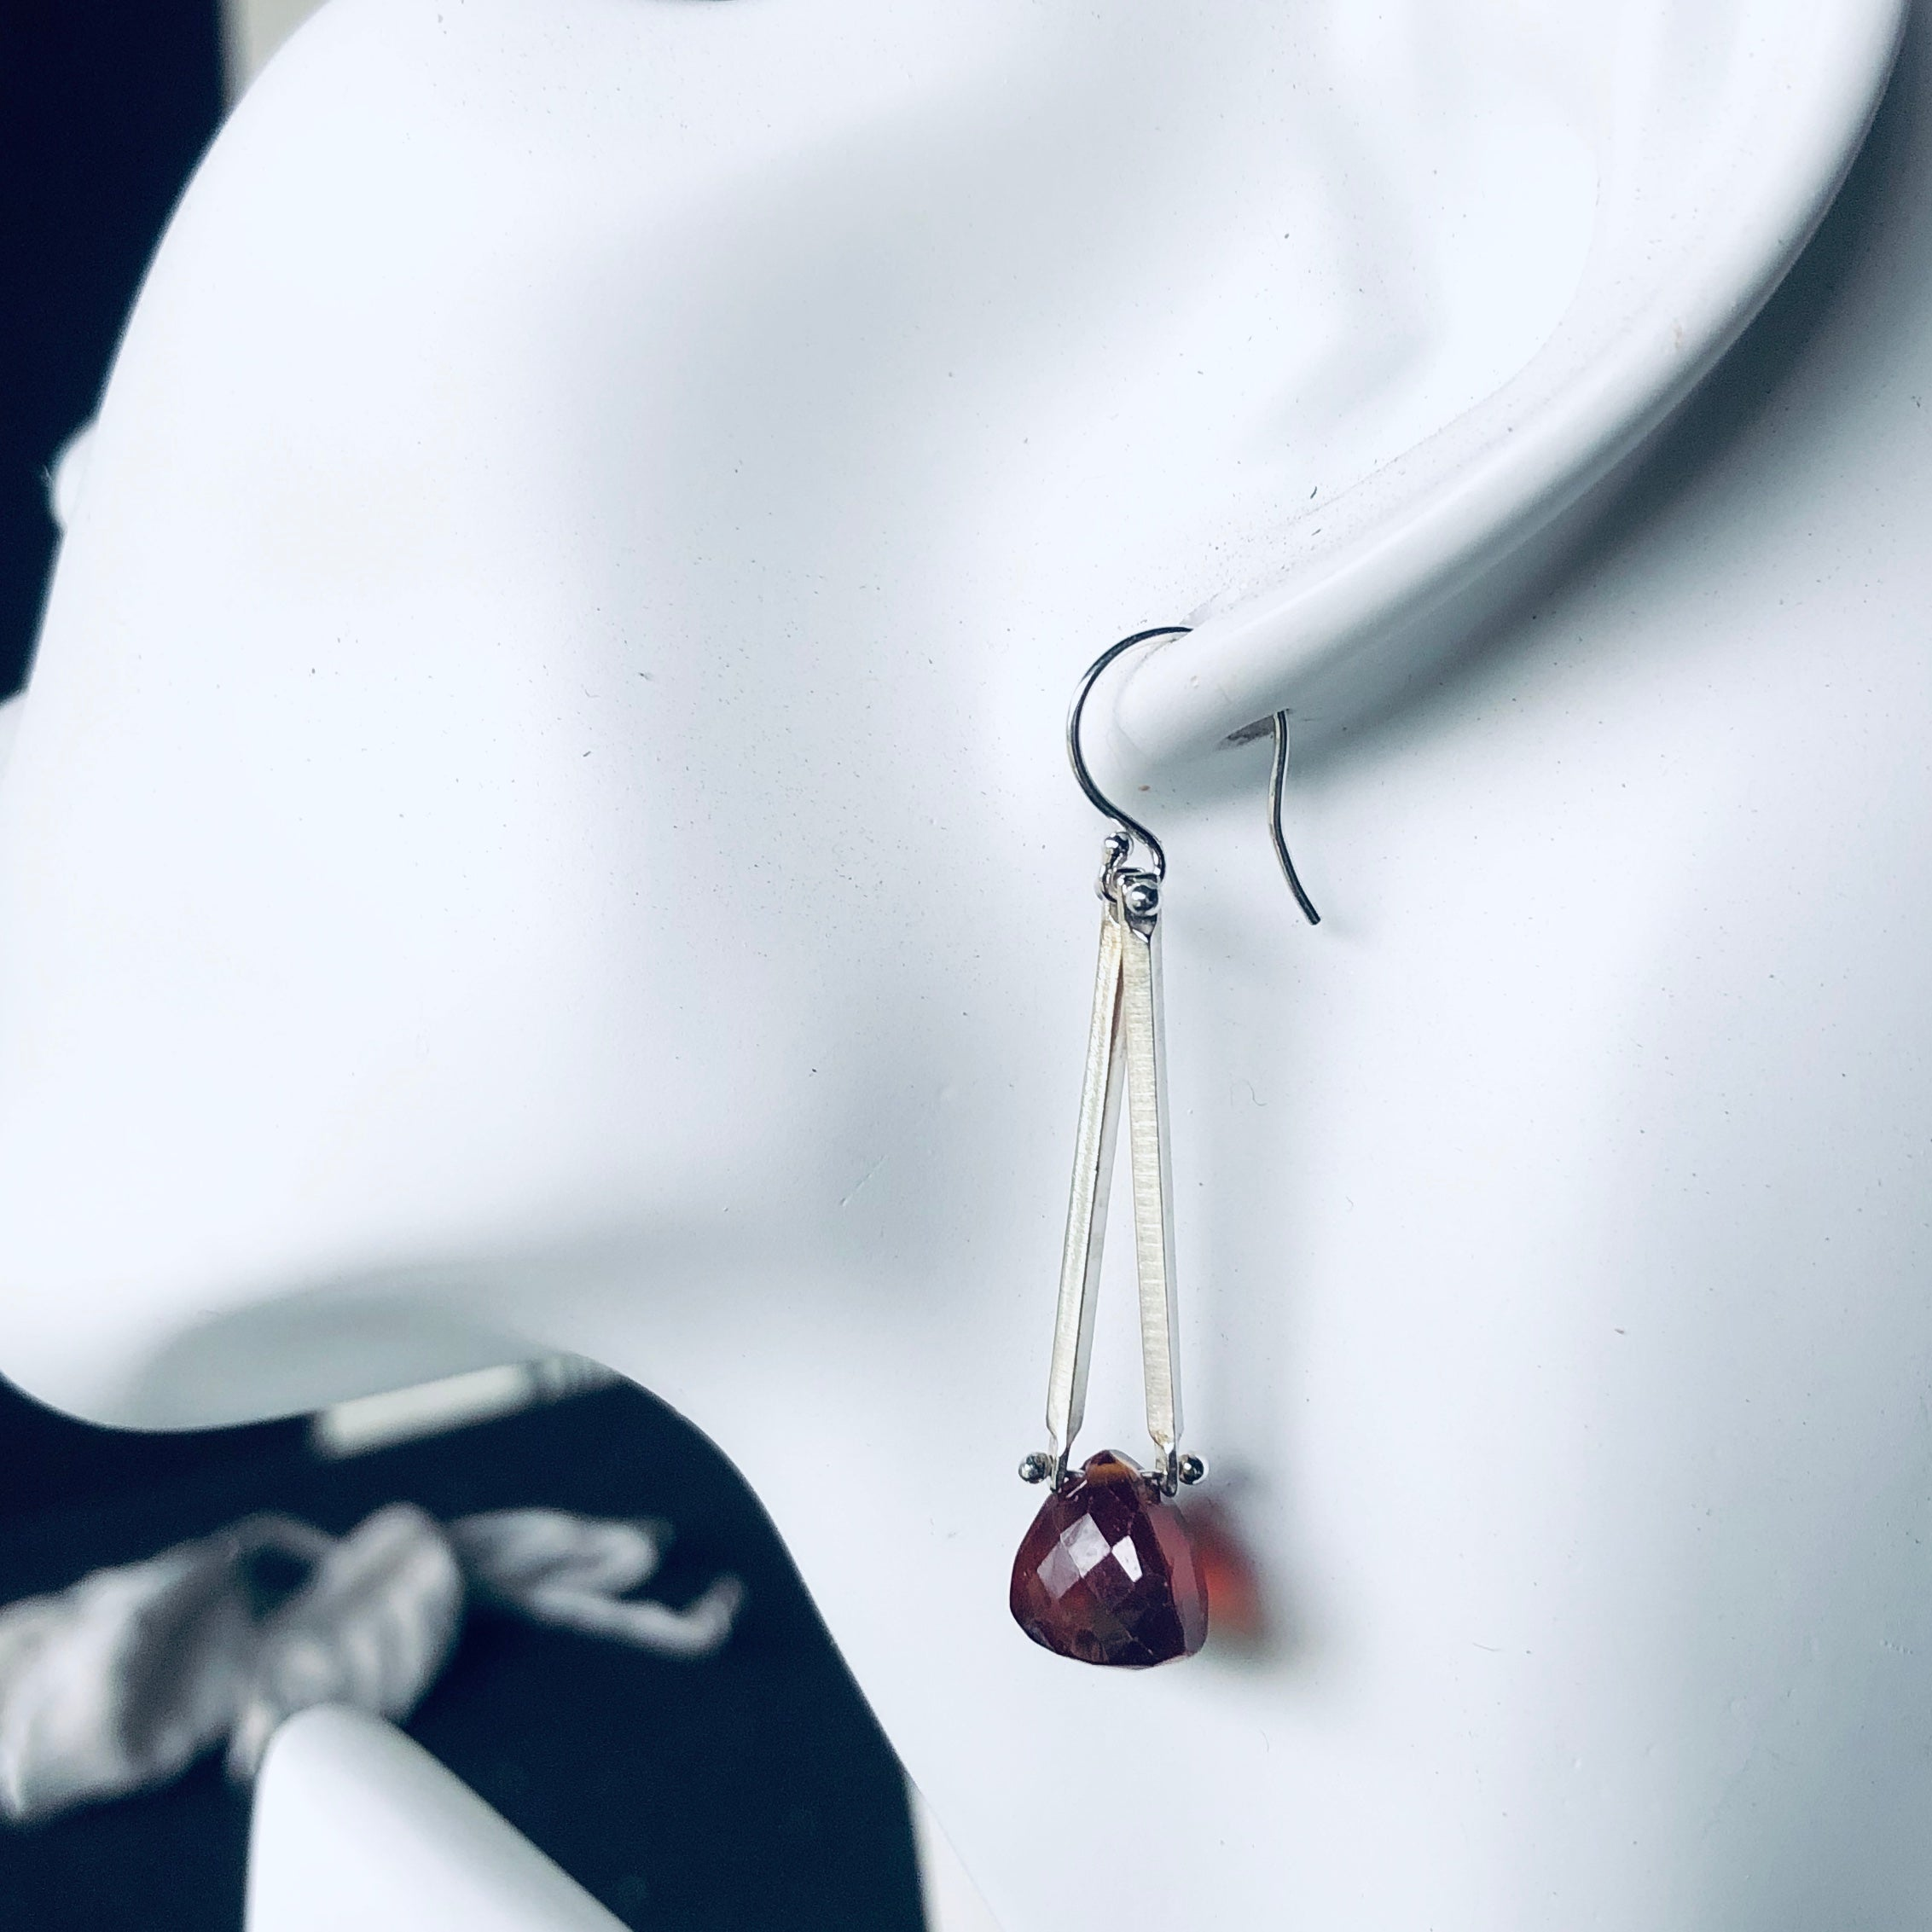 Double Twist stick earrings with gemstones-serena kojimoto studio